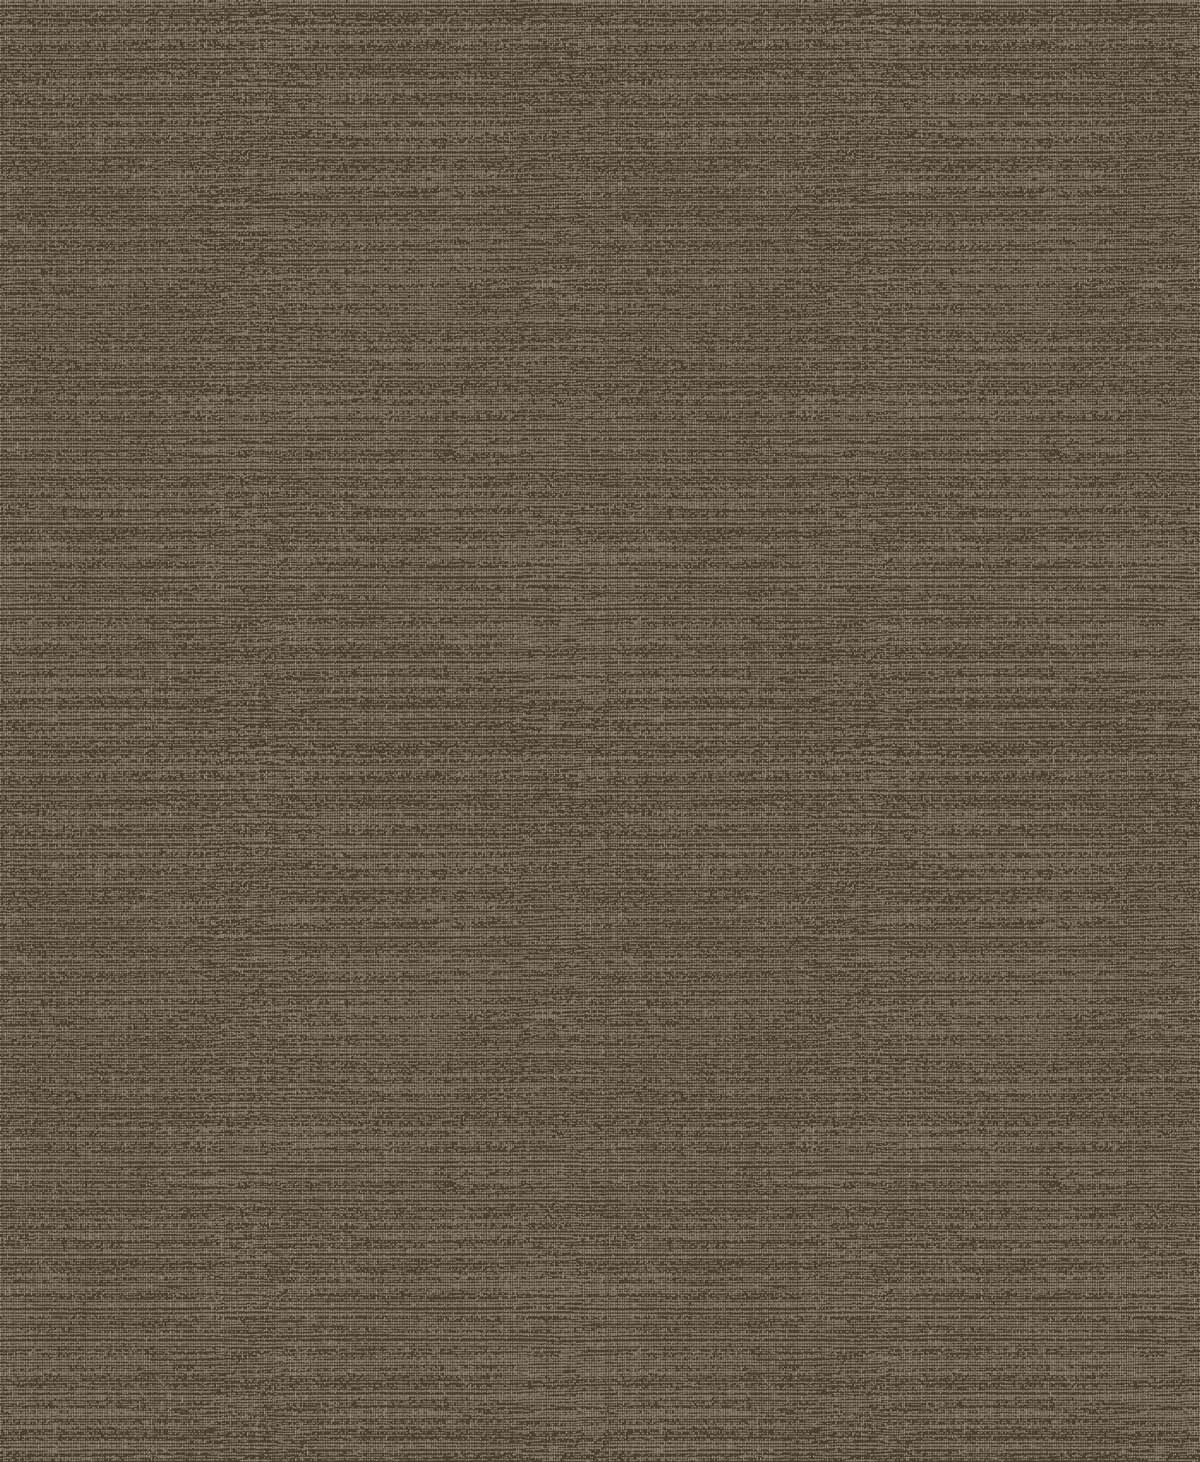 savile-row-wallpaper-melton-silk-SR00512